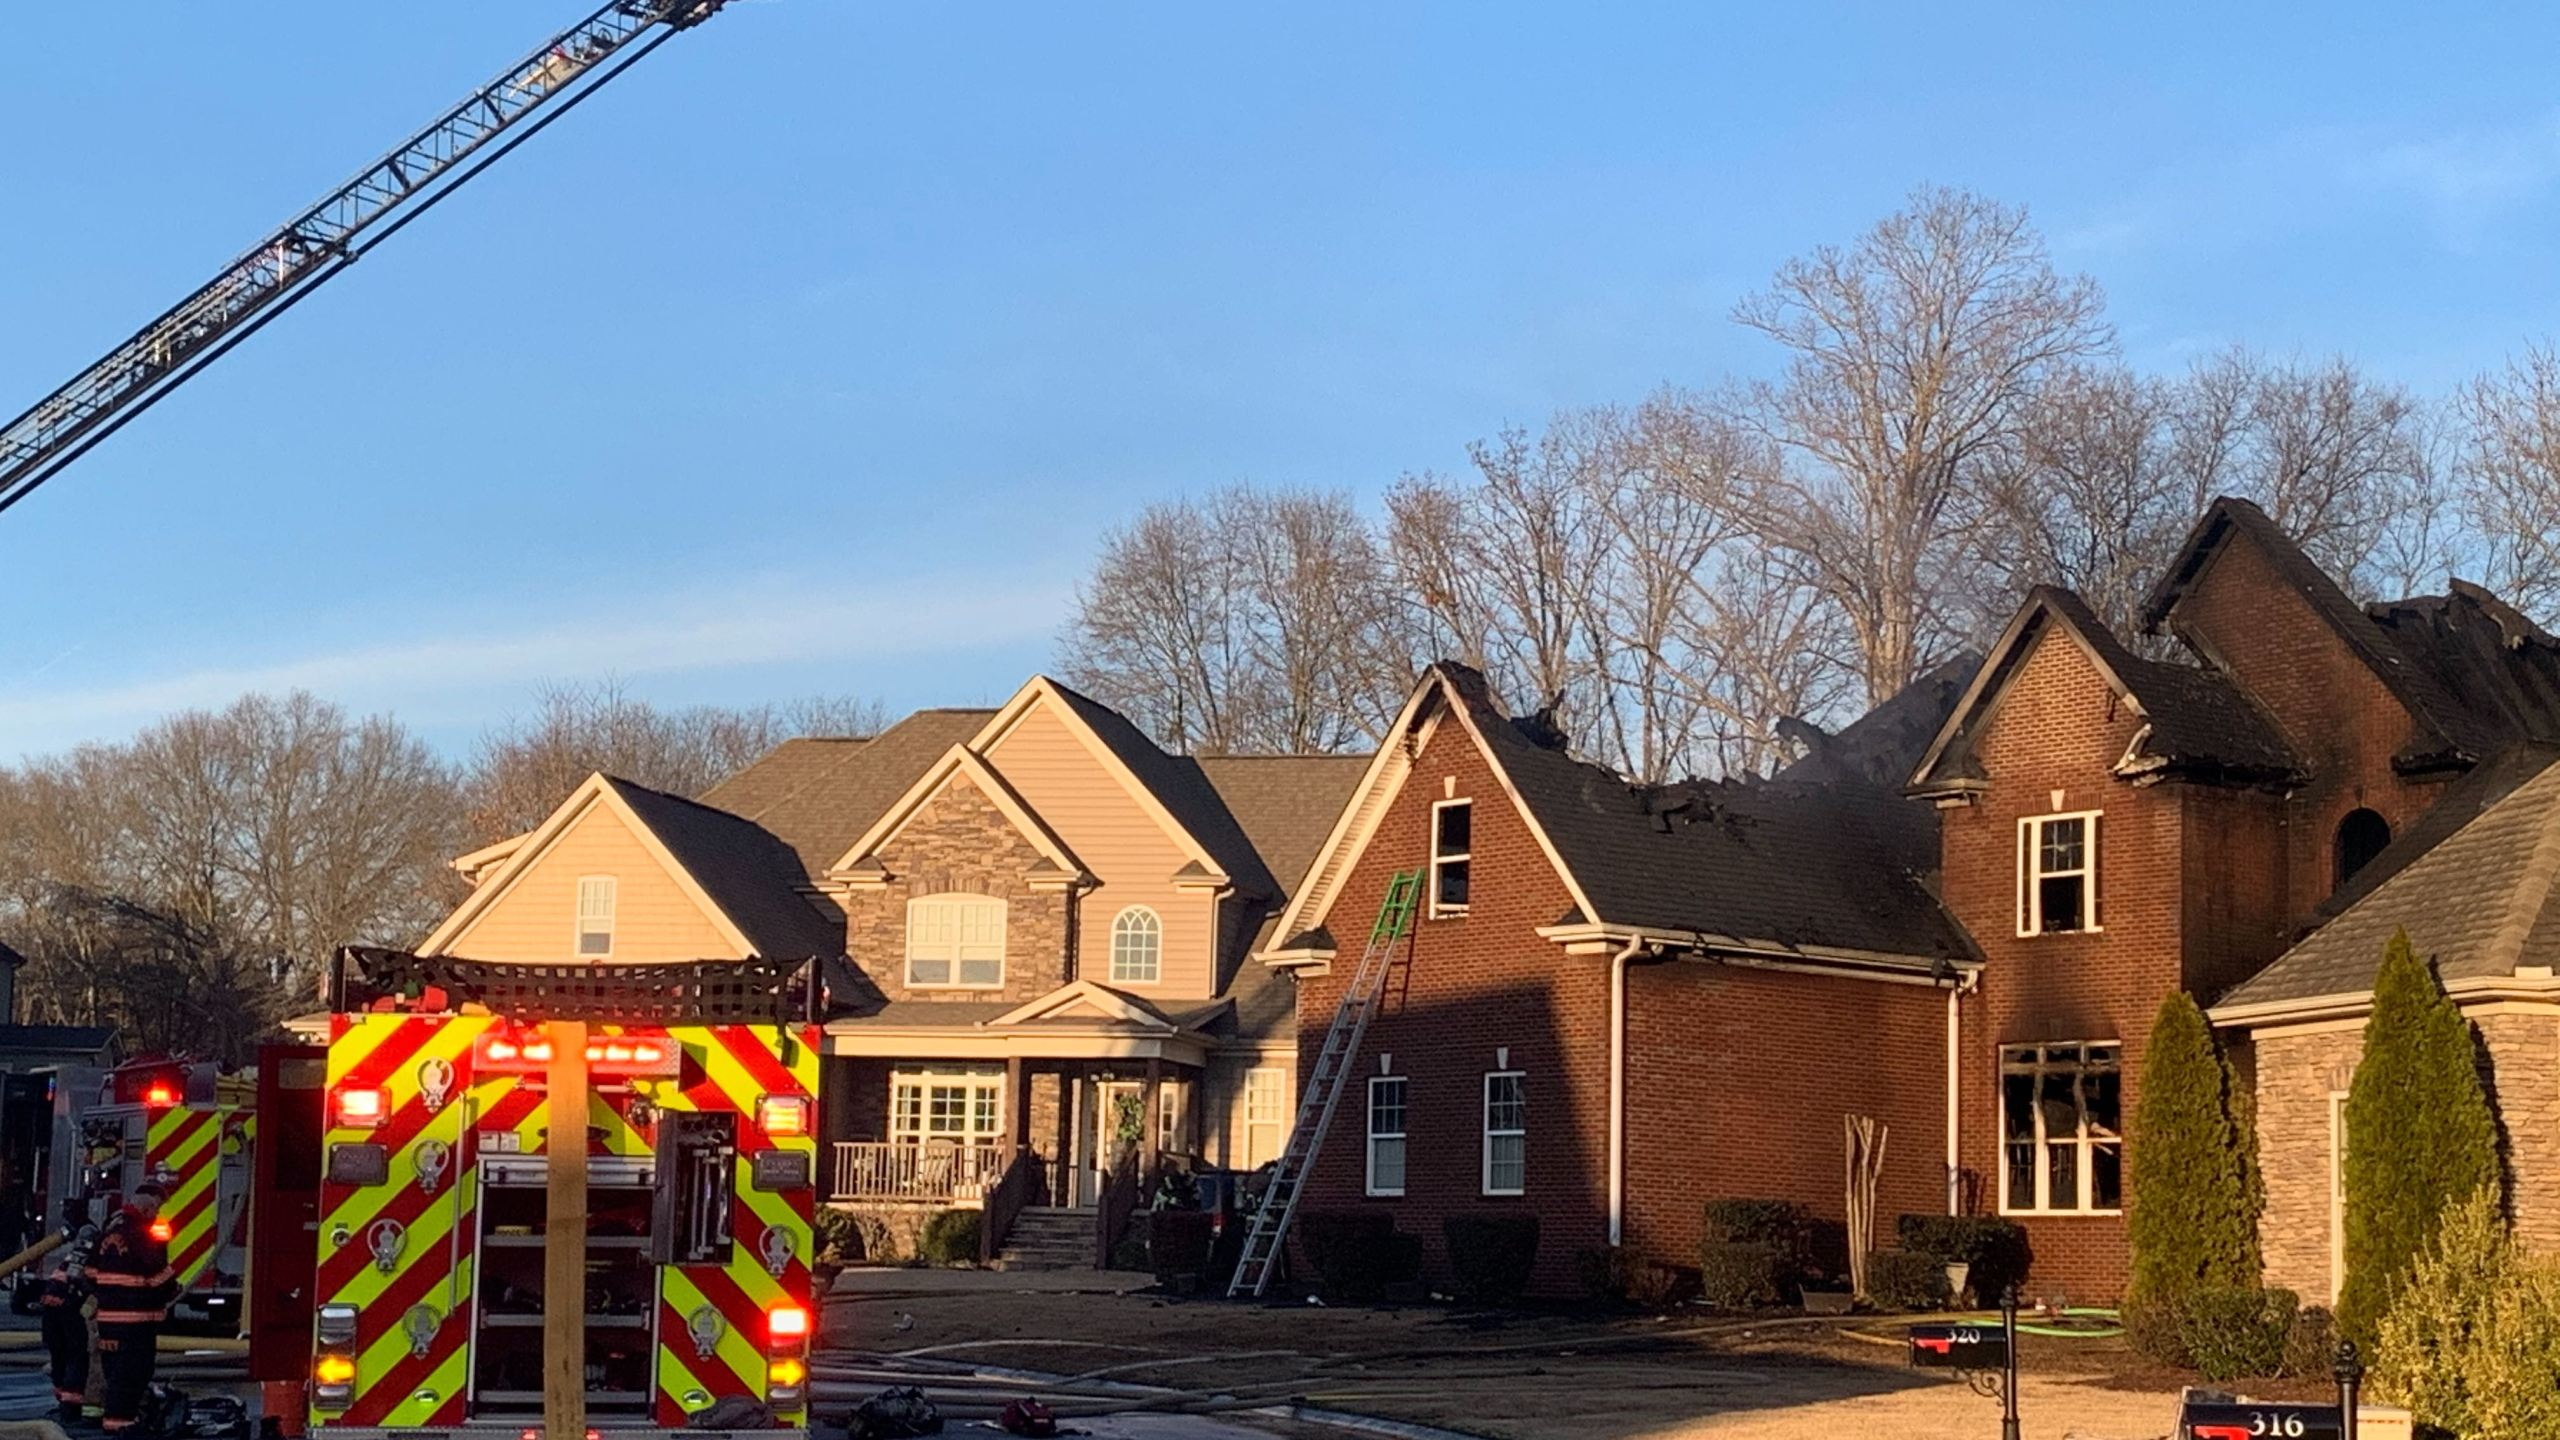 Reidville Town Halloween 2020 Crews respond to house fire at Carters Creek Ct. in Simpsonville